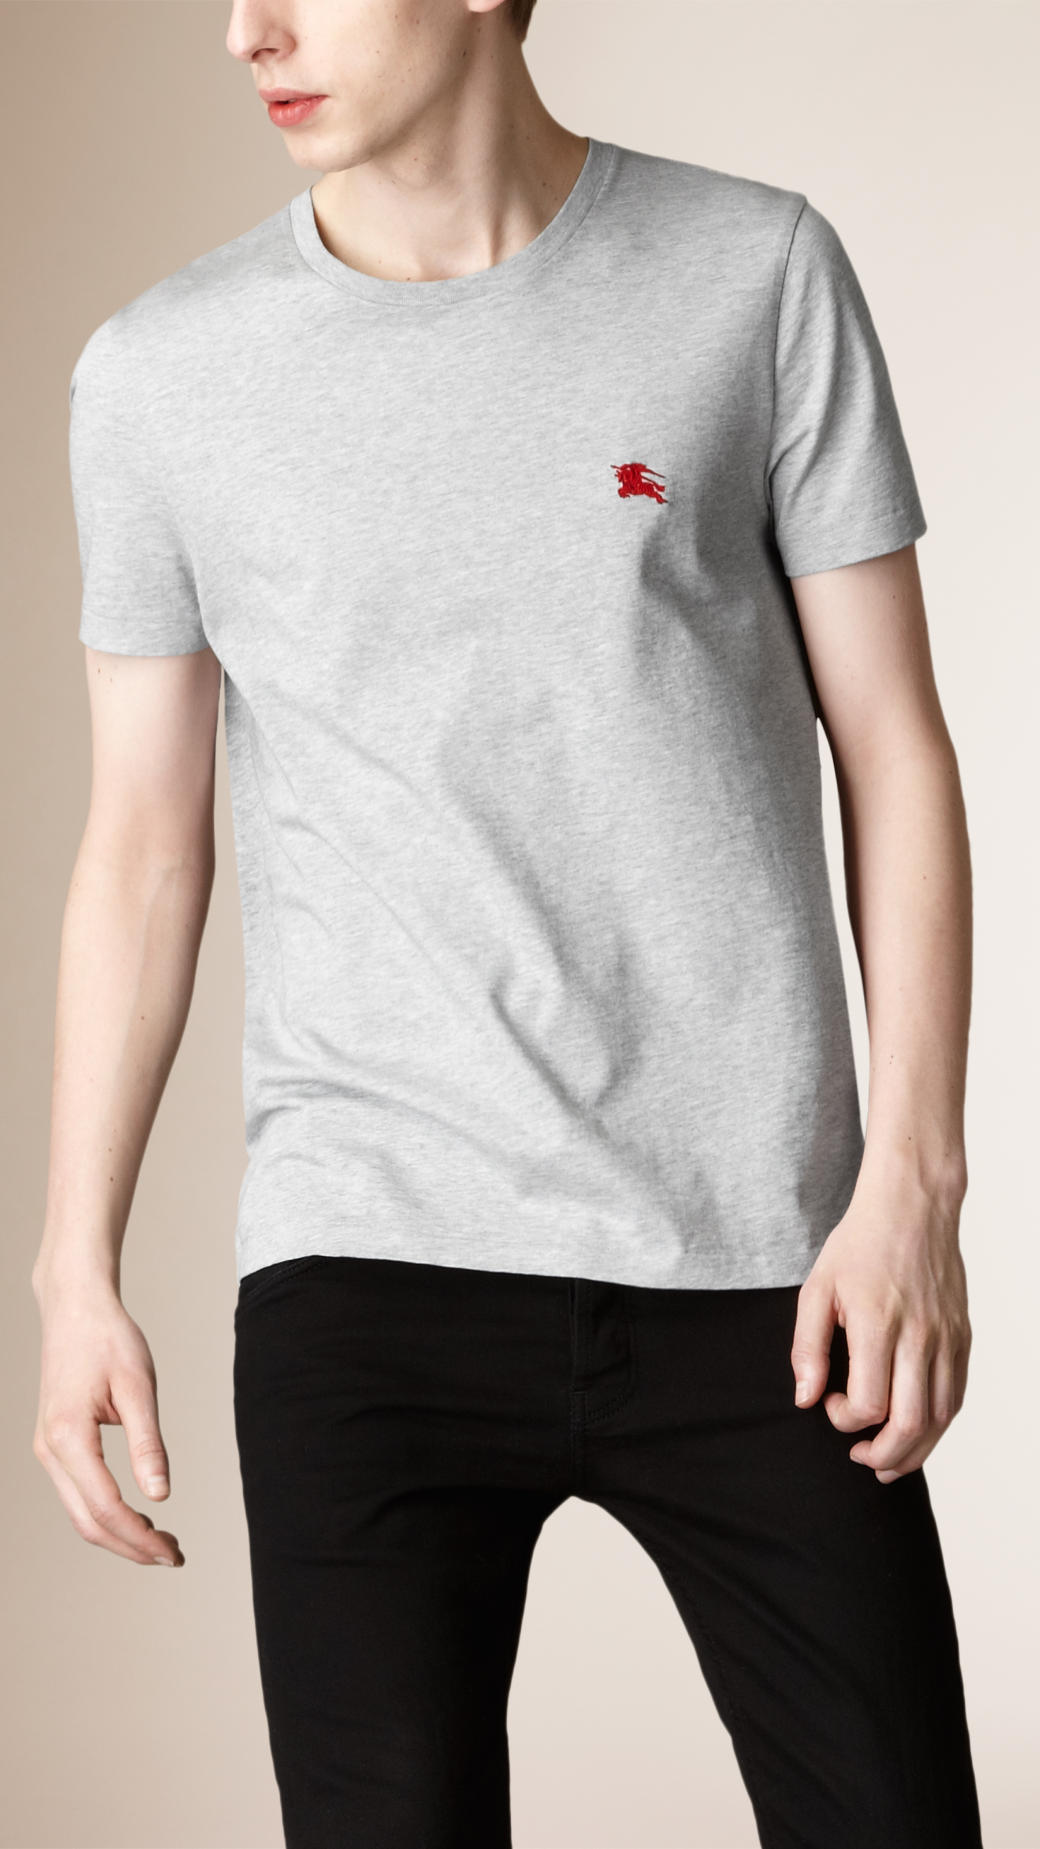 【関税負担】 Burberry 16ss Liquid-soft Cotton T-Shirt